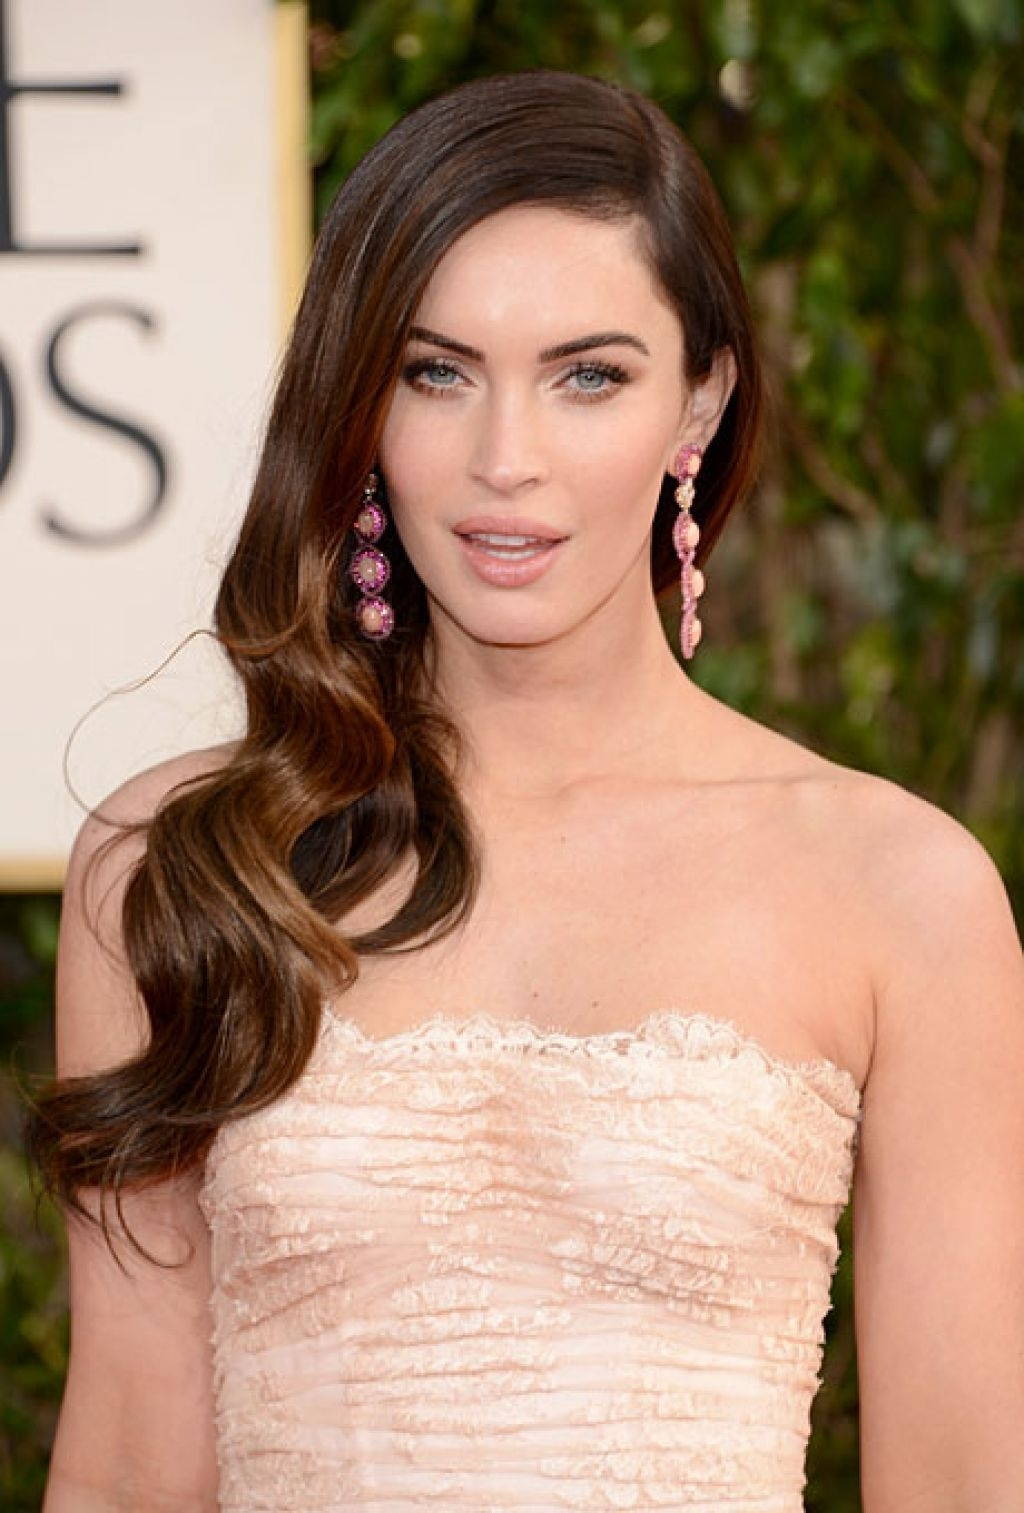 Most Popular Celebrity Wedding Hairstyles For Wedding Hairstyle Idea Megan Foxs Wavy Side Swept Twist (View 6 of 15)